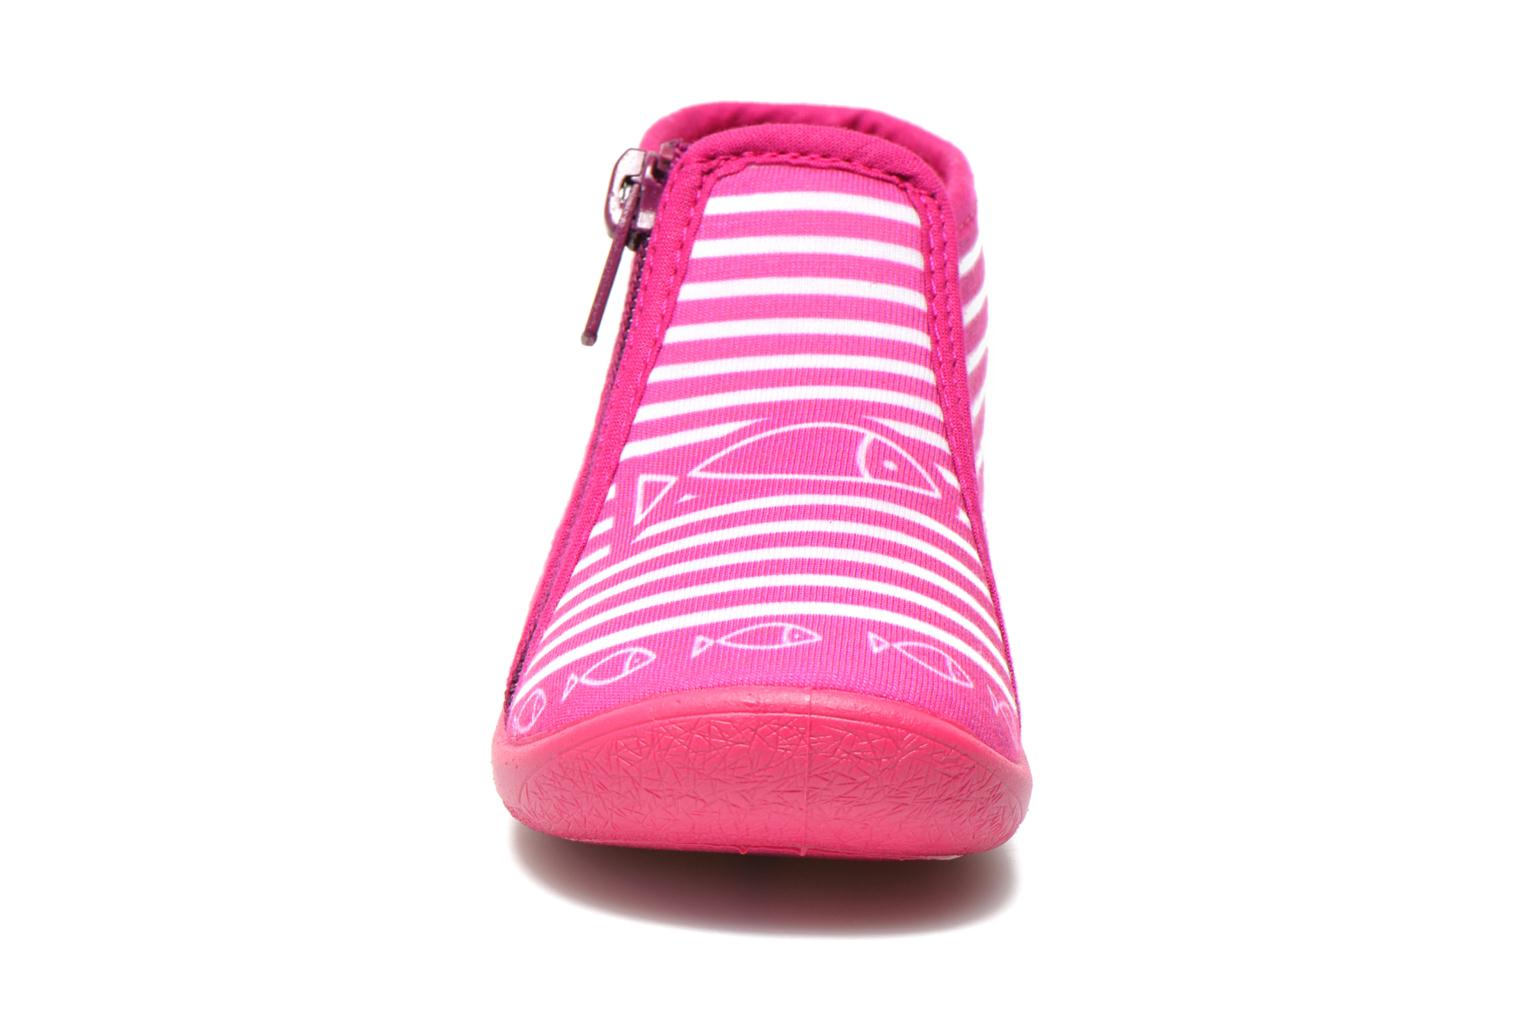 Chaussons Be Only Botillon Zip Timouss Rose vue portées chaussures